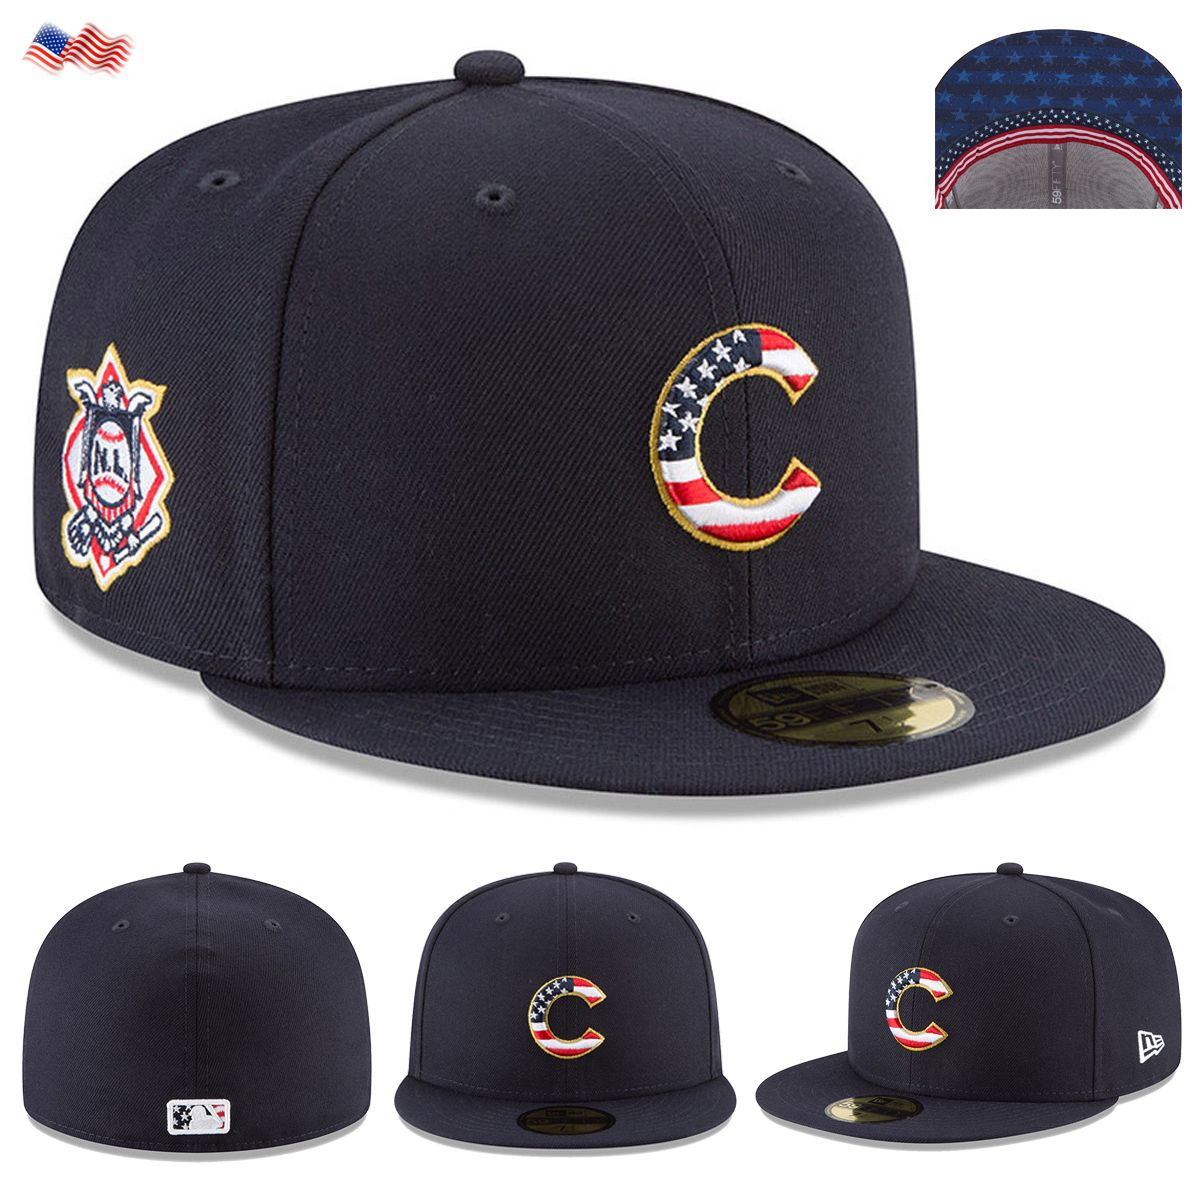 d47007b3 release date chicago cubs fourth of july hat 2fa82 948e8